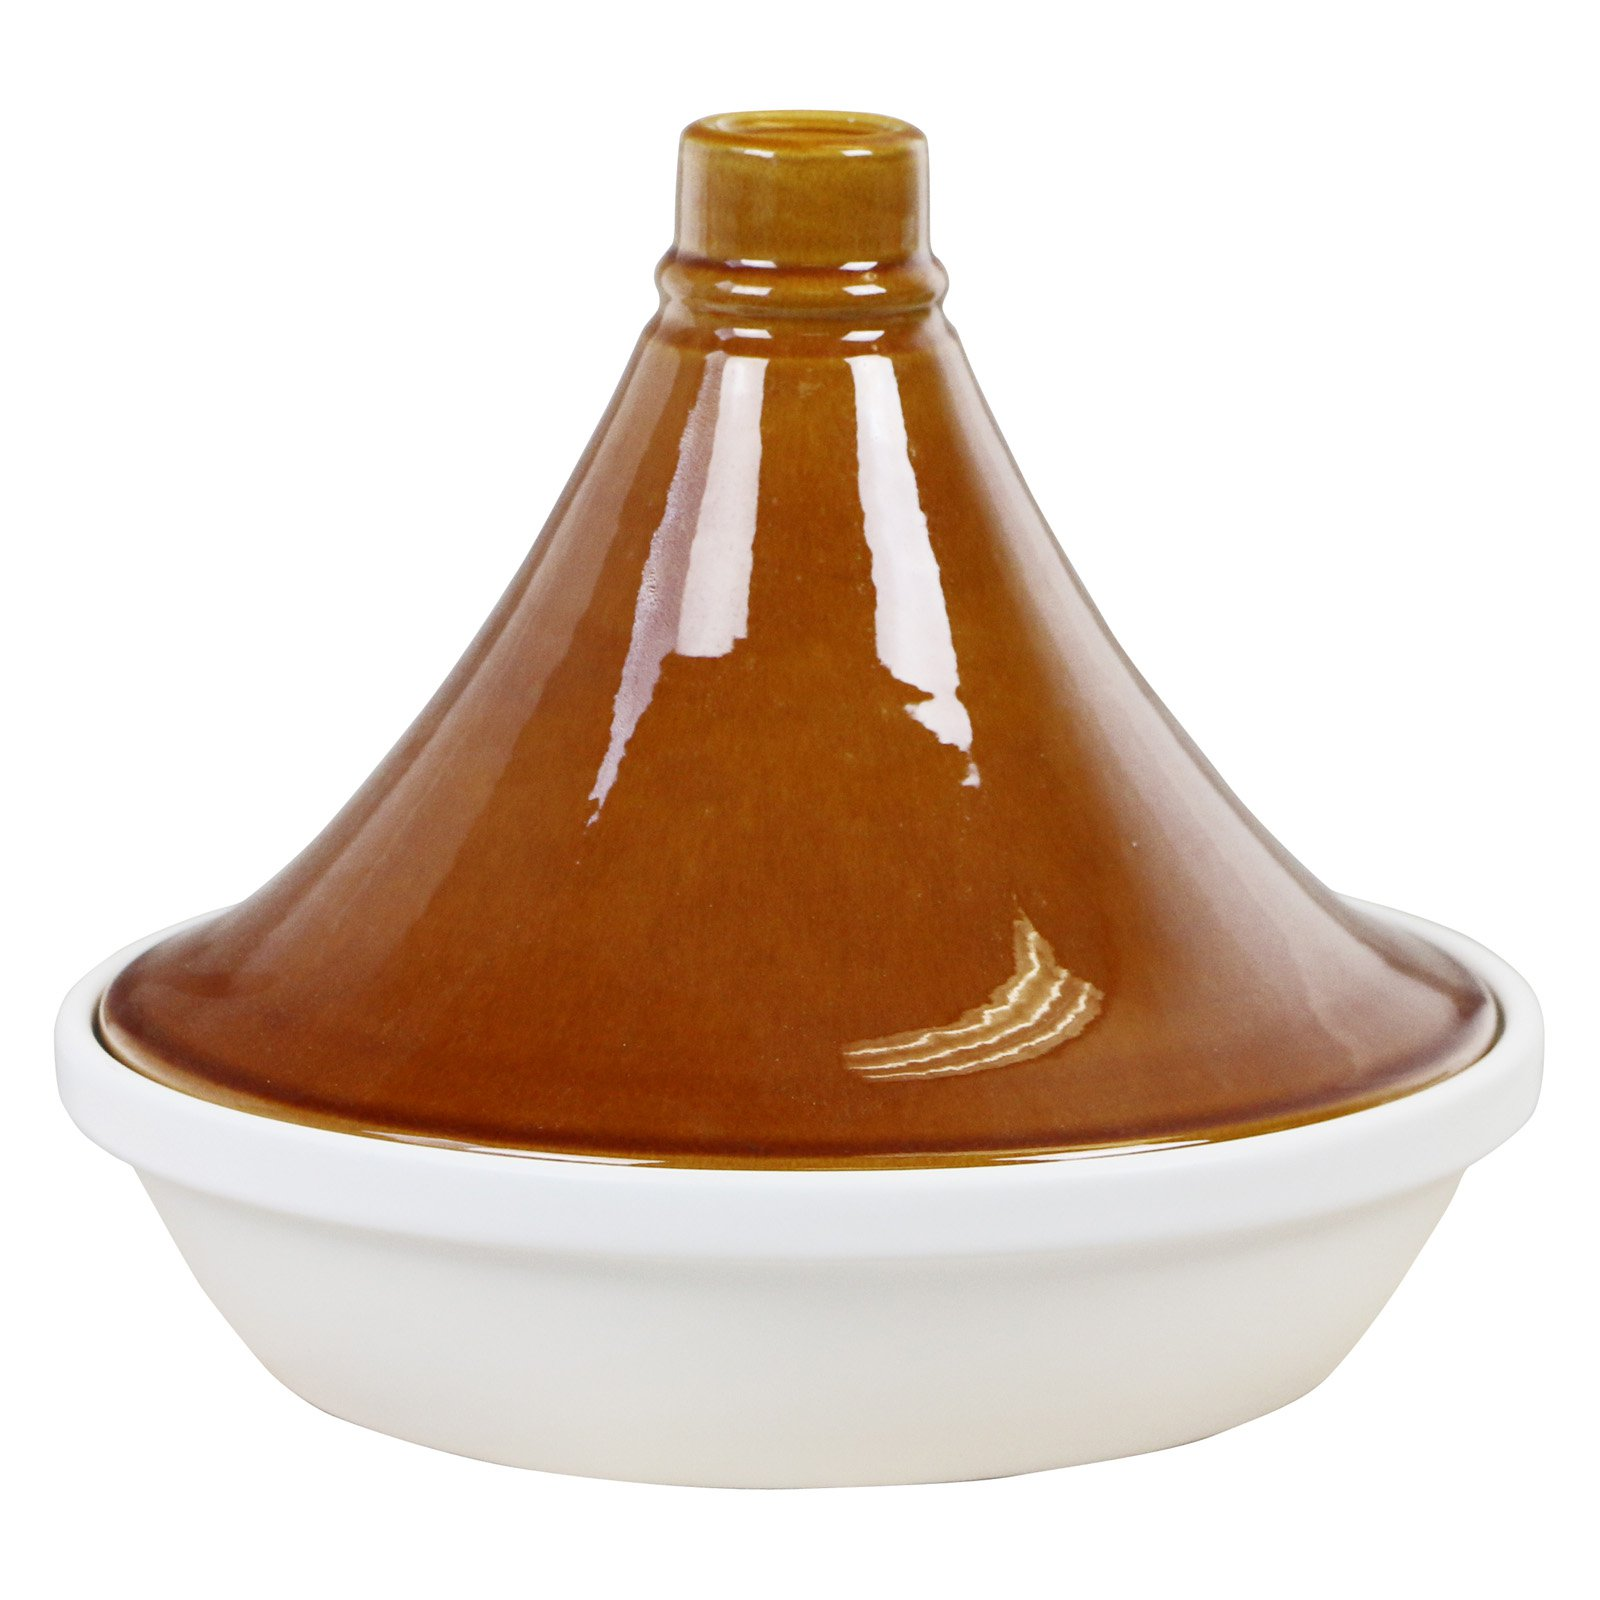 Eurita Porcelain 2.5 Qt. Tagine, Honey